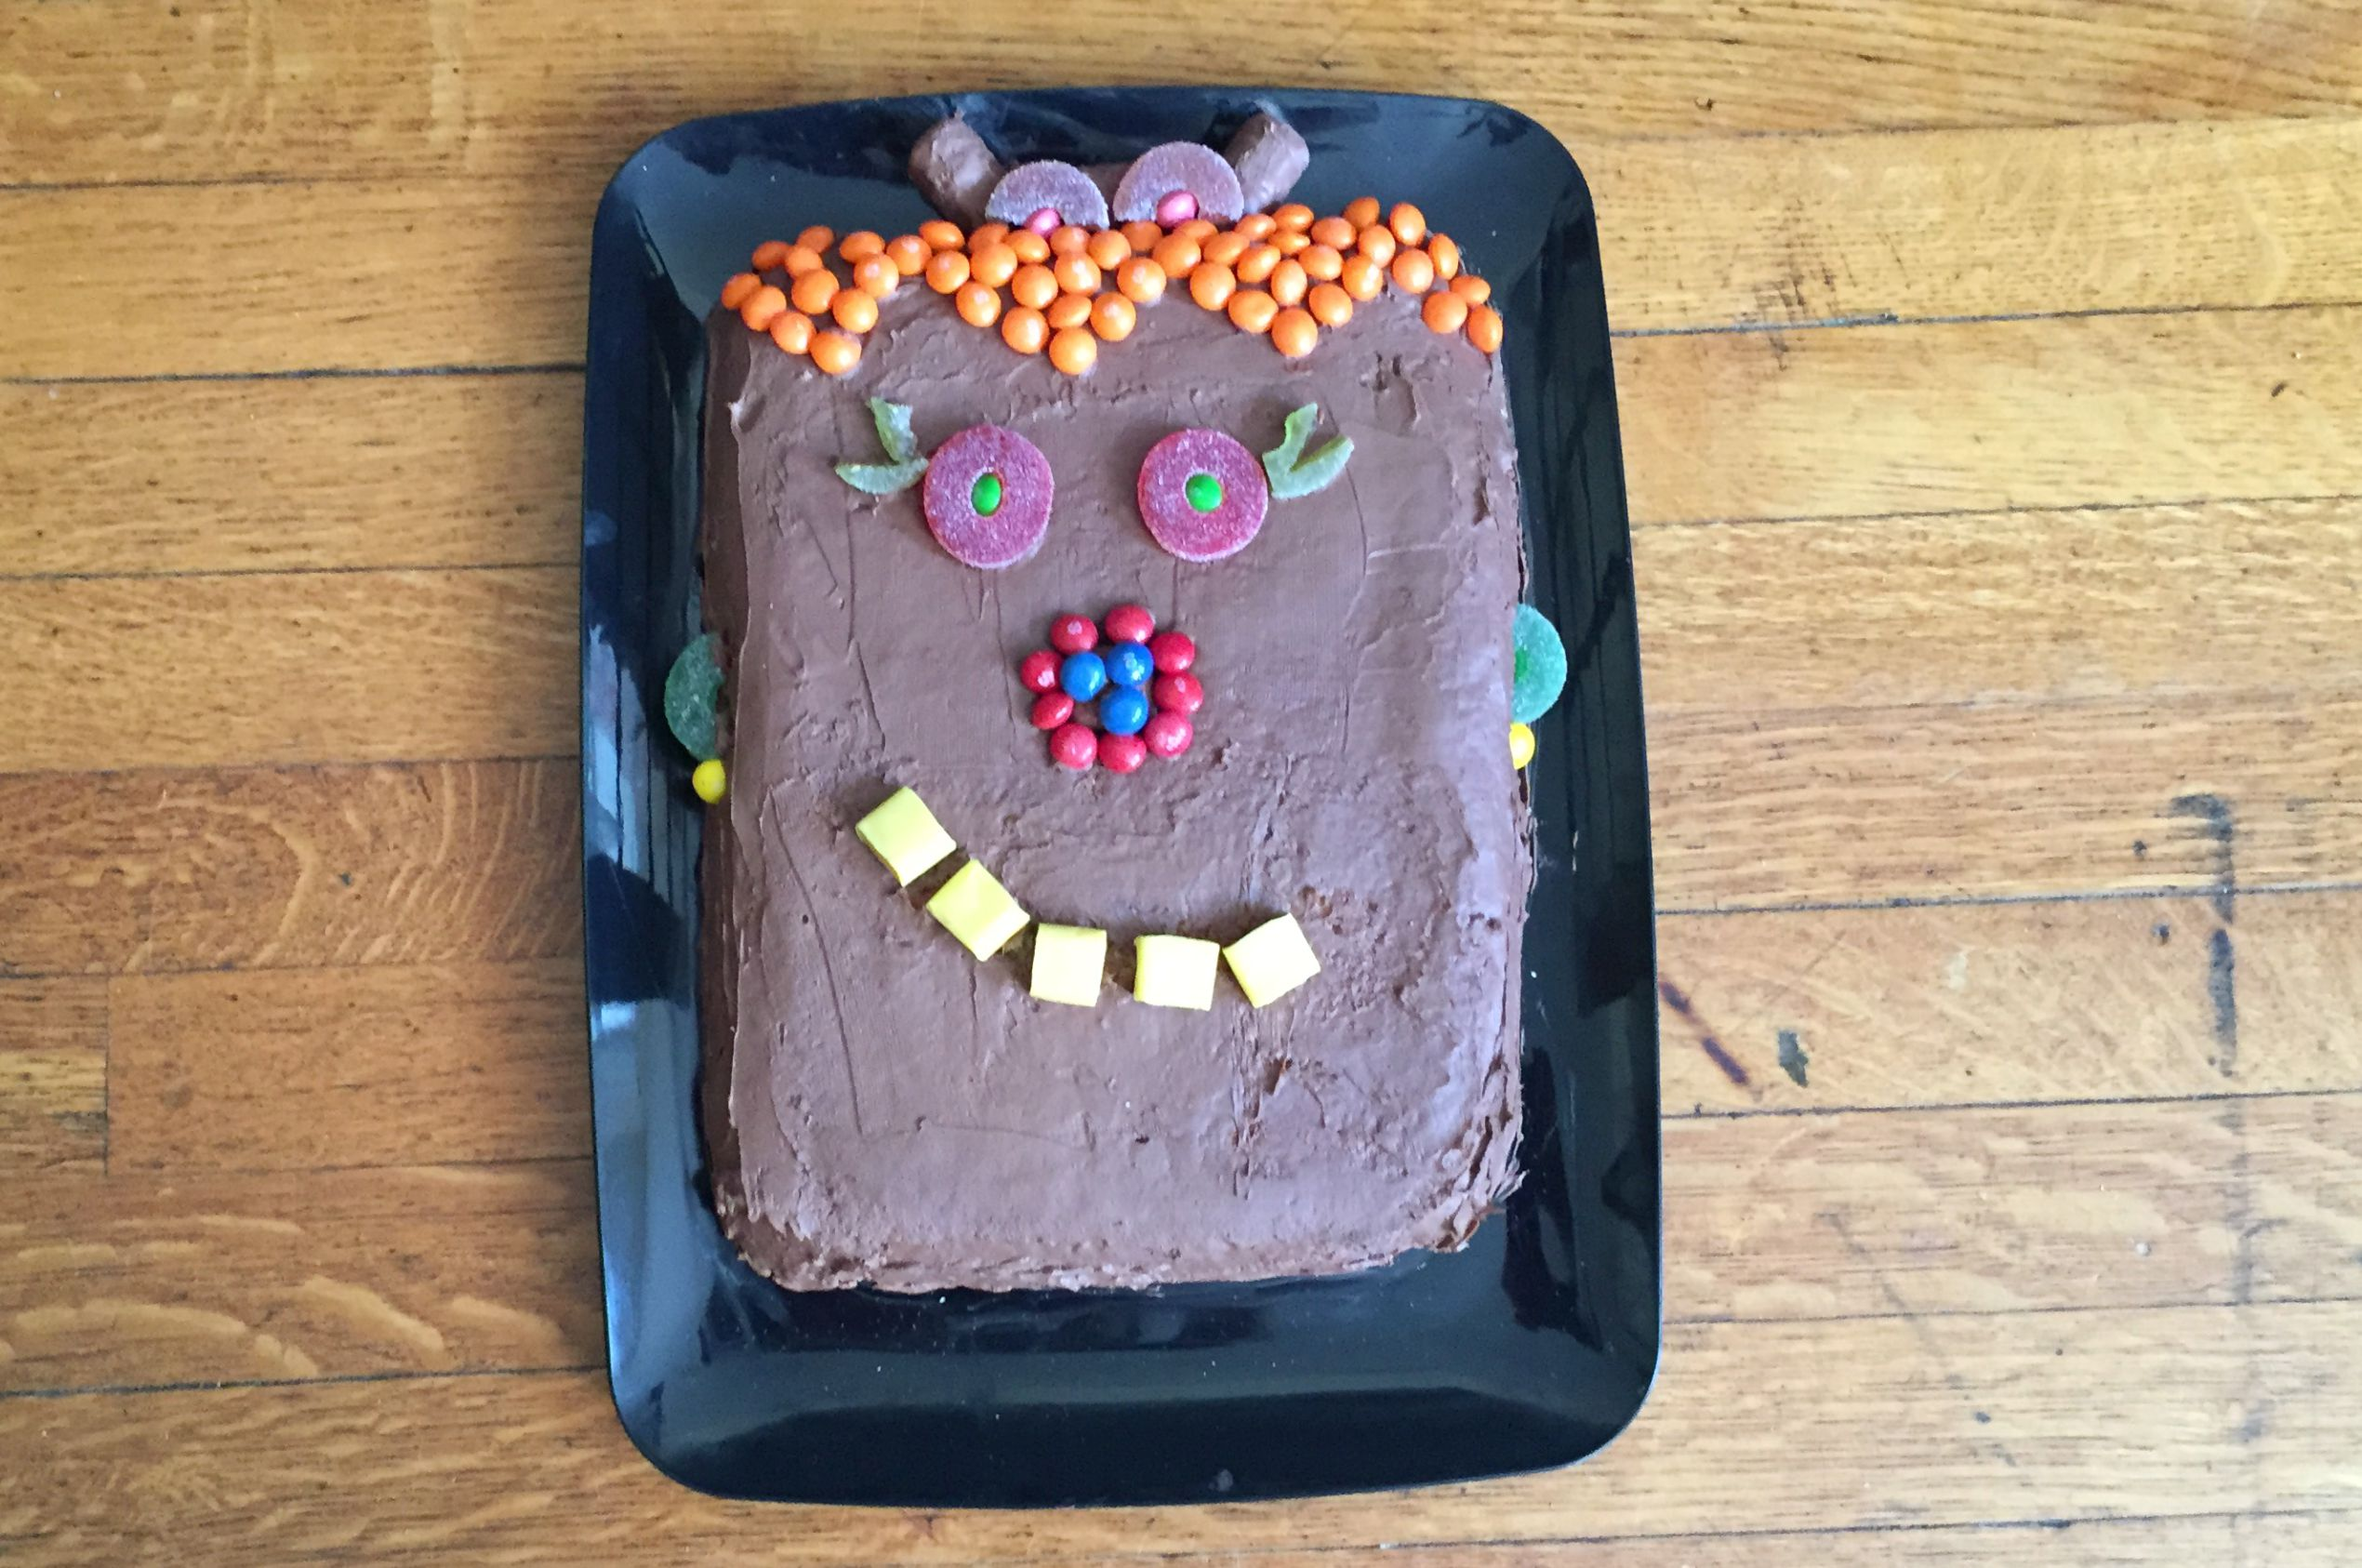 Girl Monster Cake Featured Image